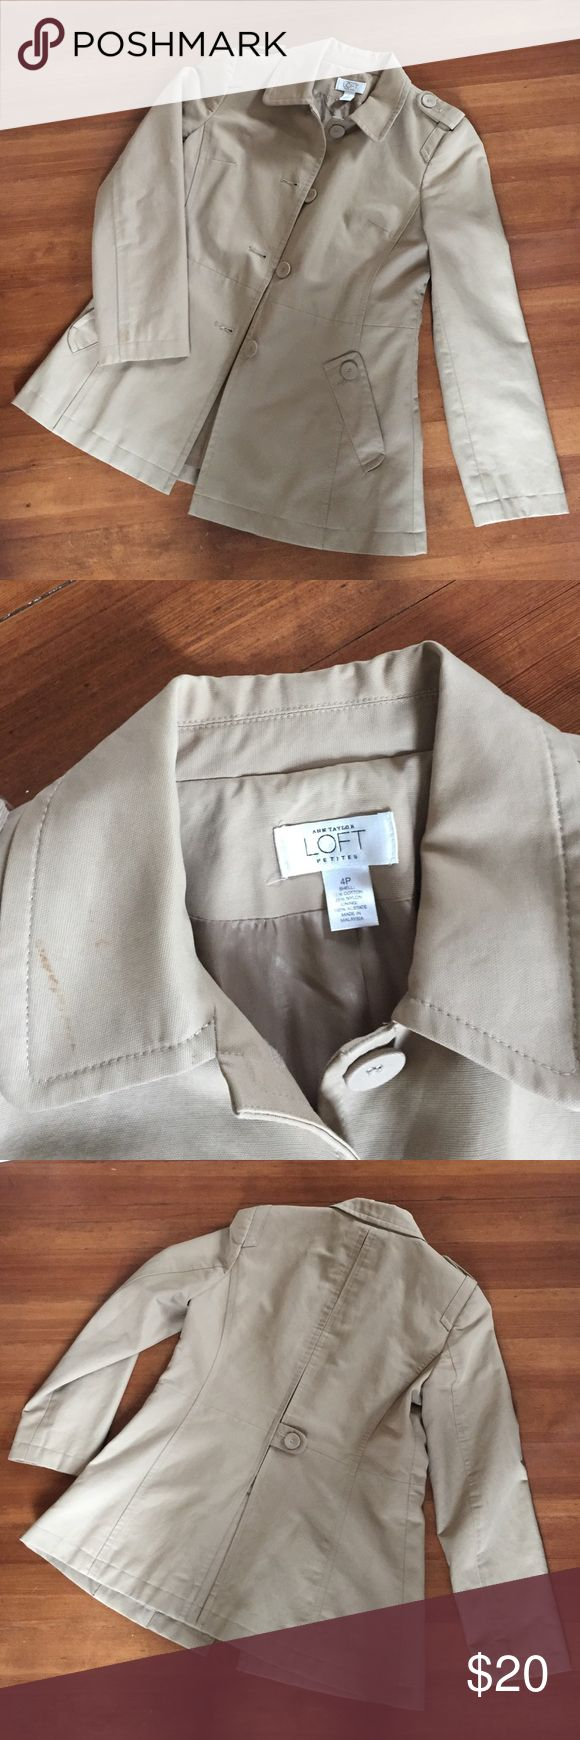 Loft Tan Water Resistant Coat Very good condition Ann Taylor LOFT light weight water resistant coat. No stains or rips LOFT Jackets & Coats